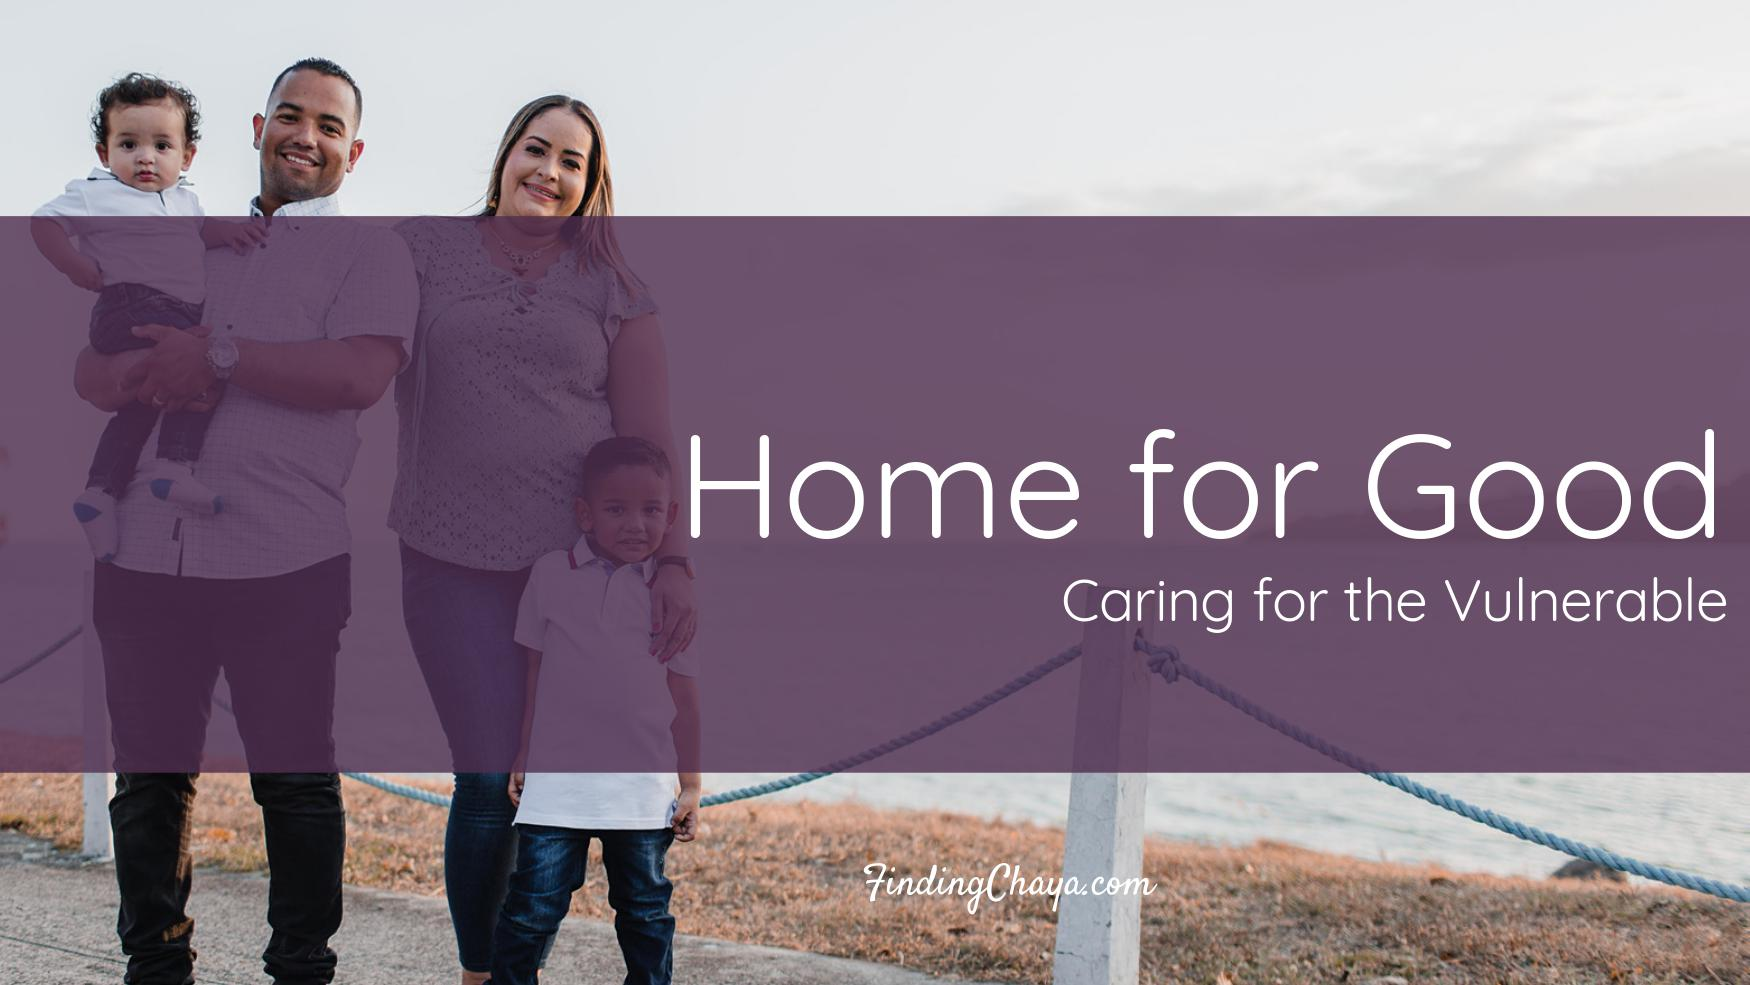 Home for Good - Caring for the Vulnerable